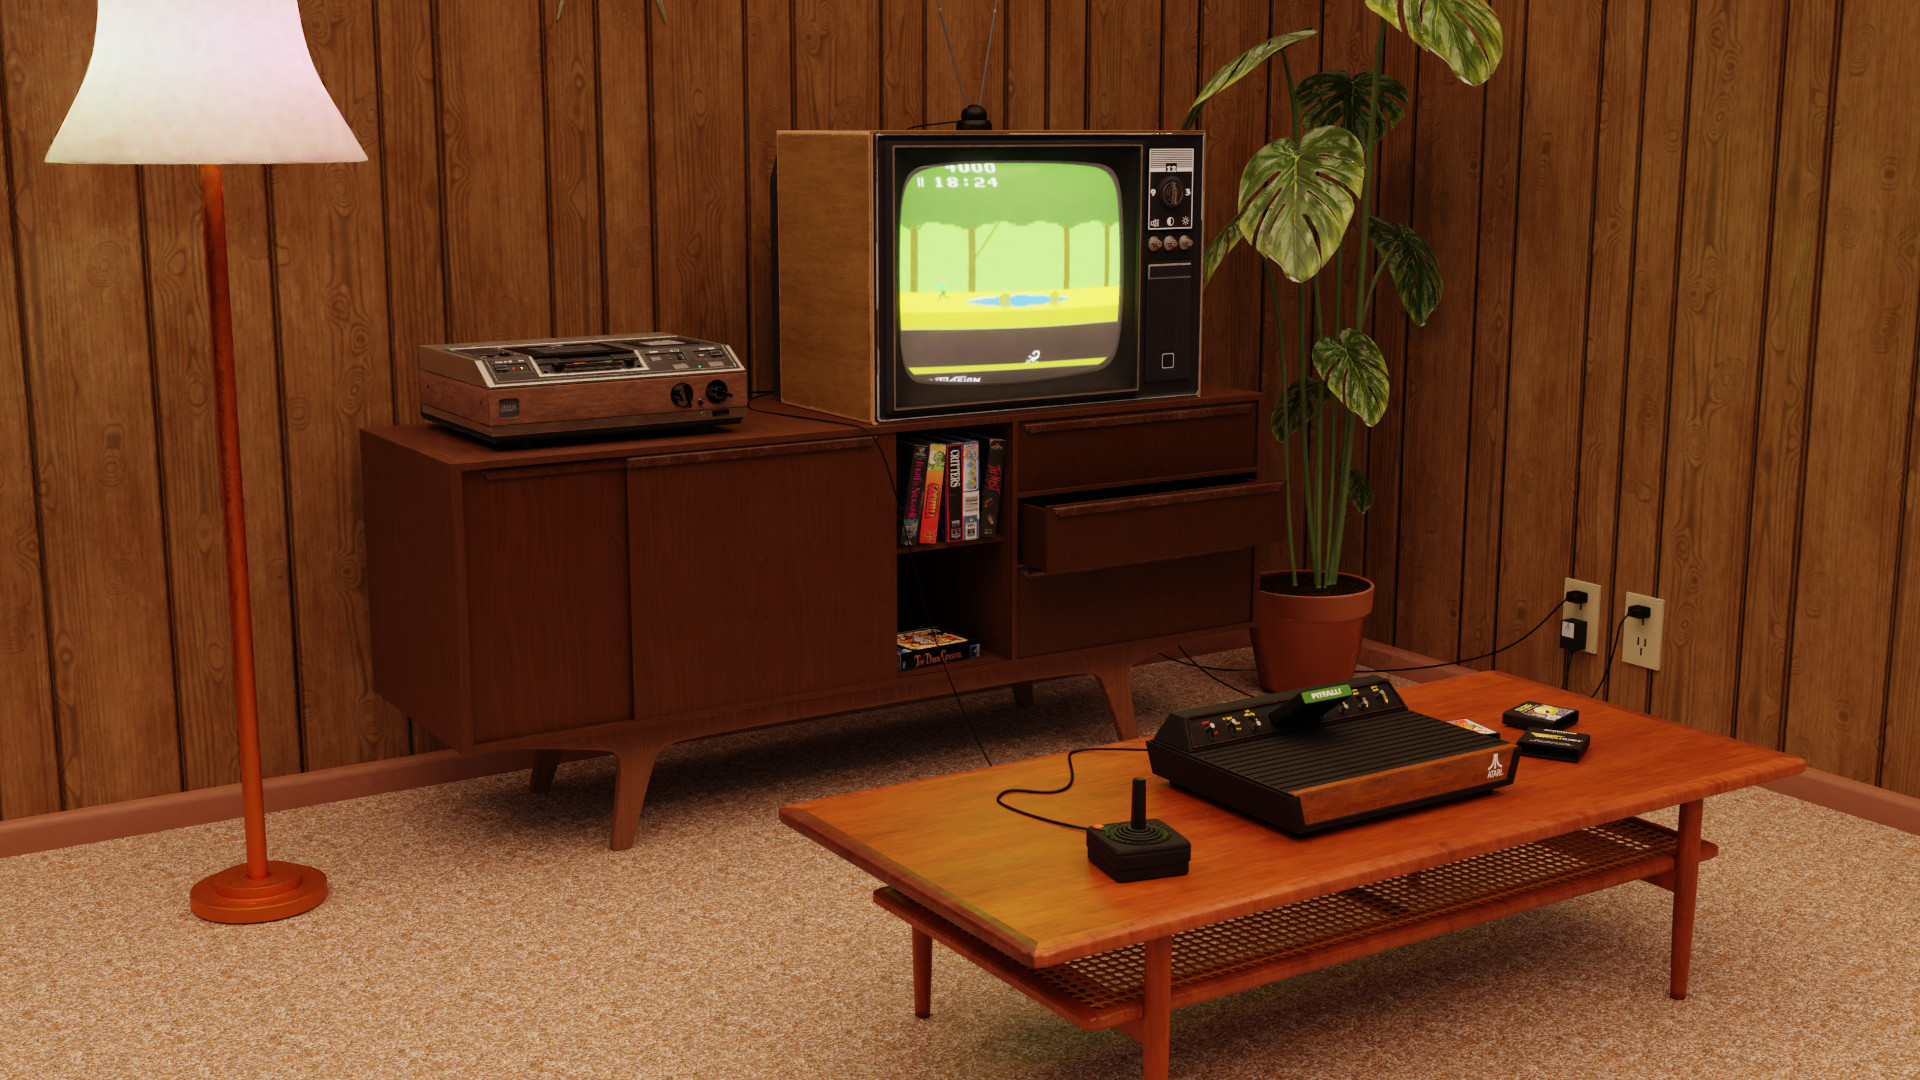 James Clark - 1980s Living Room